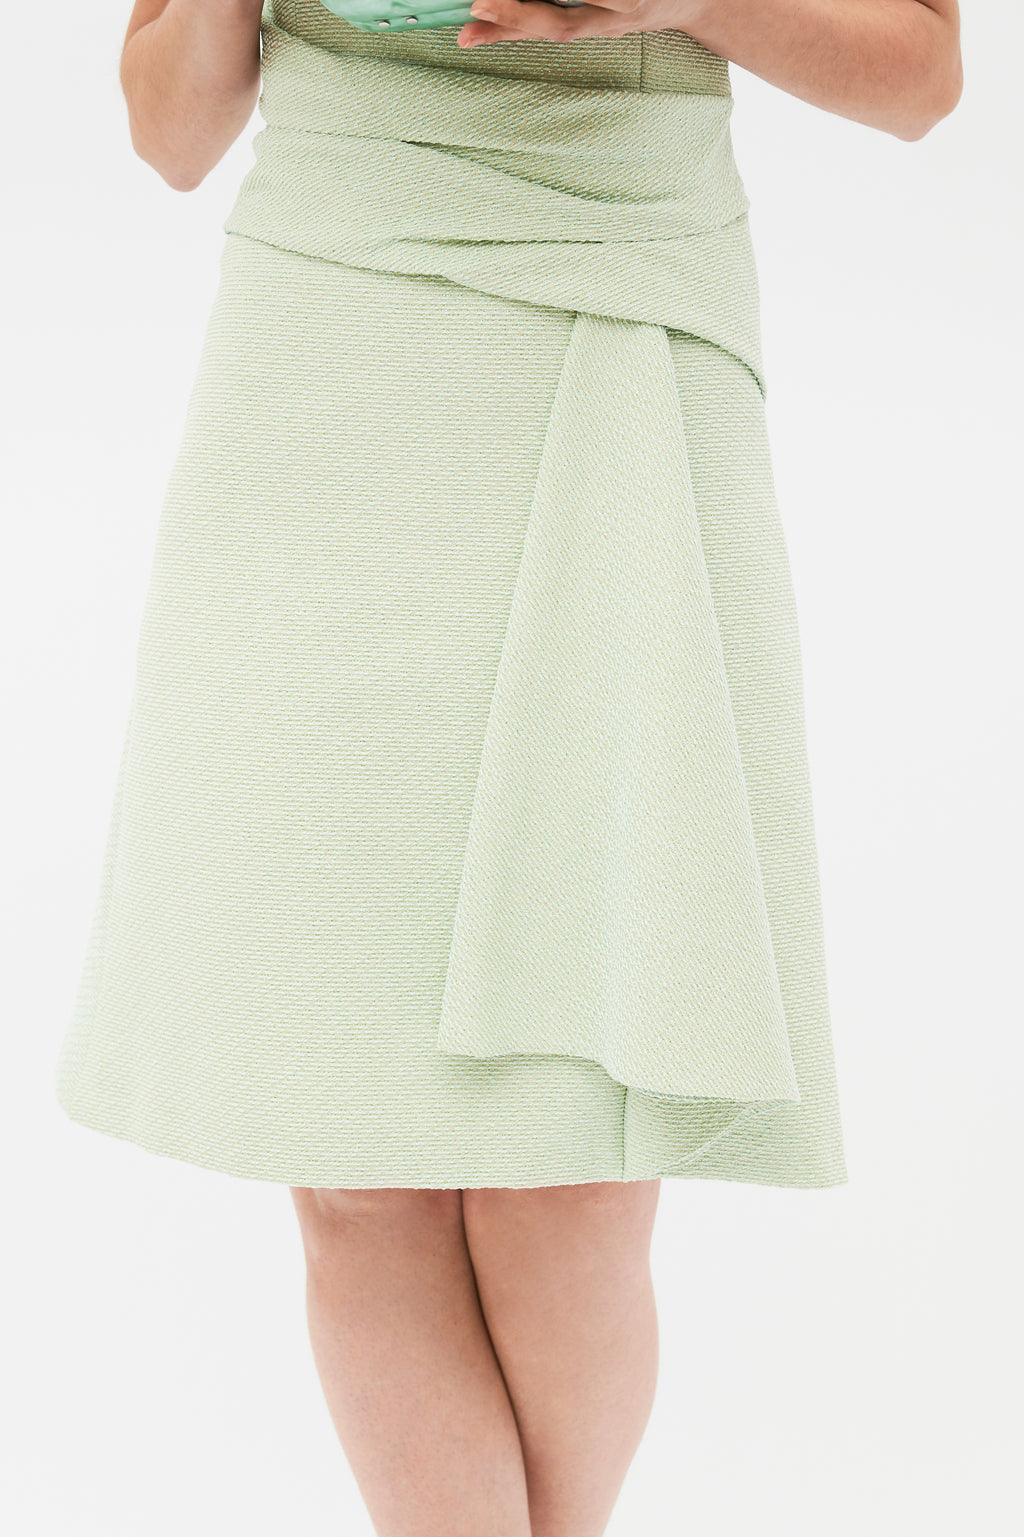 Lossan dress - lime green